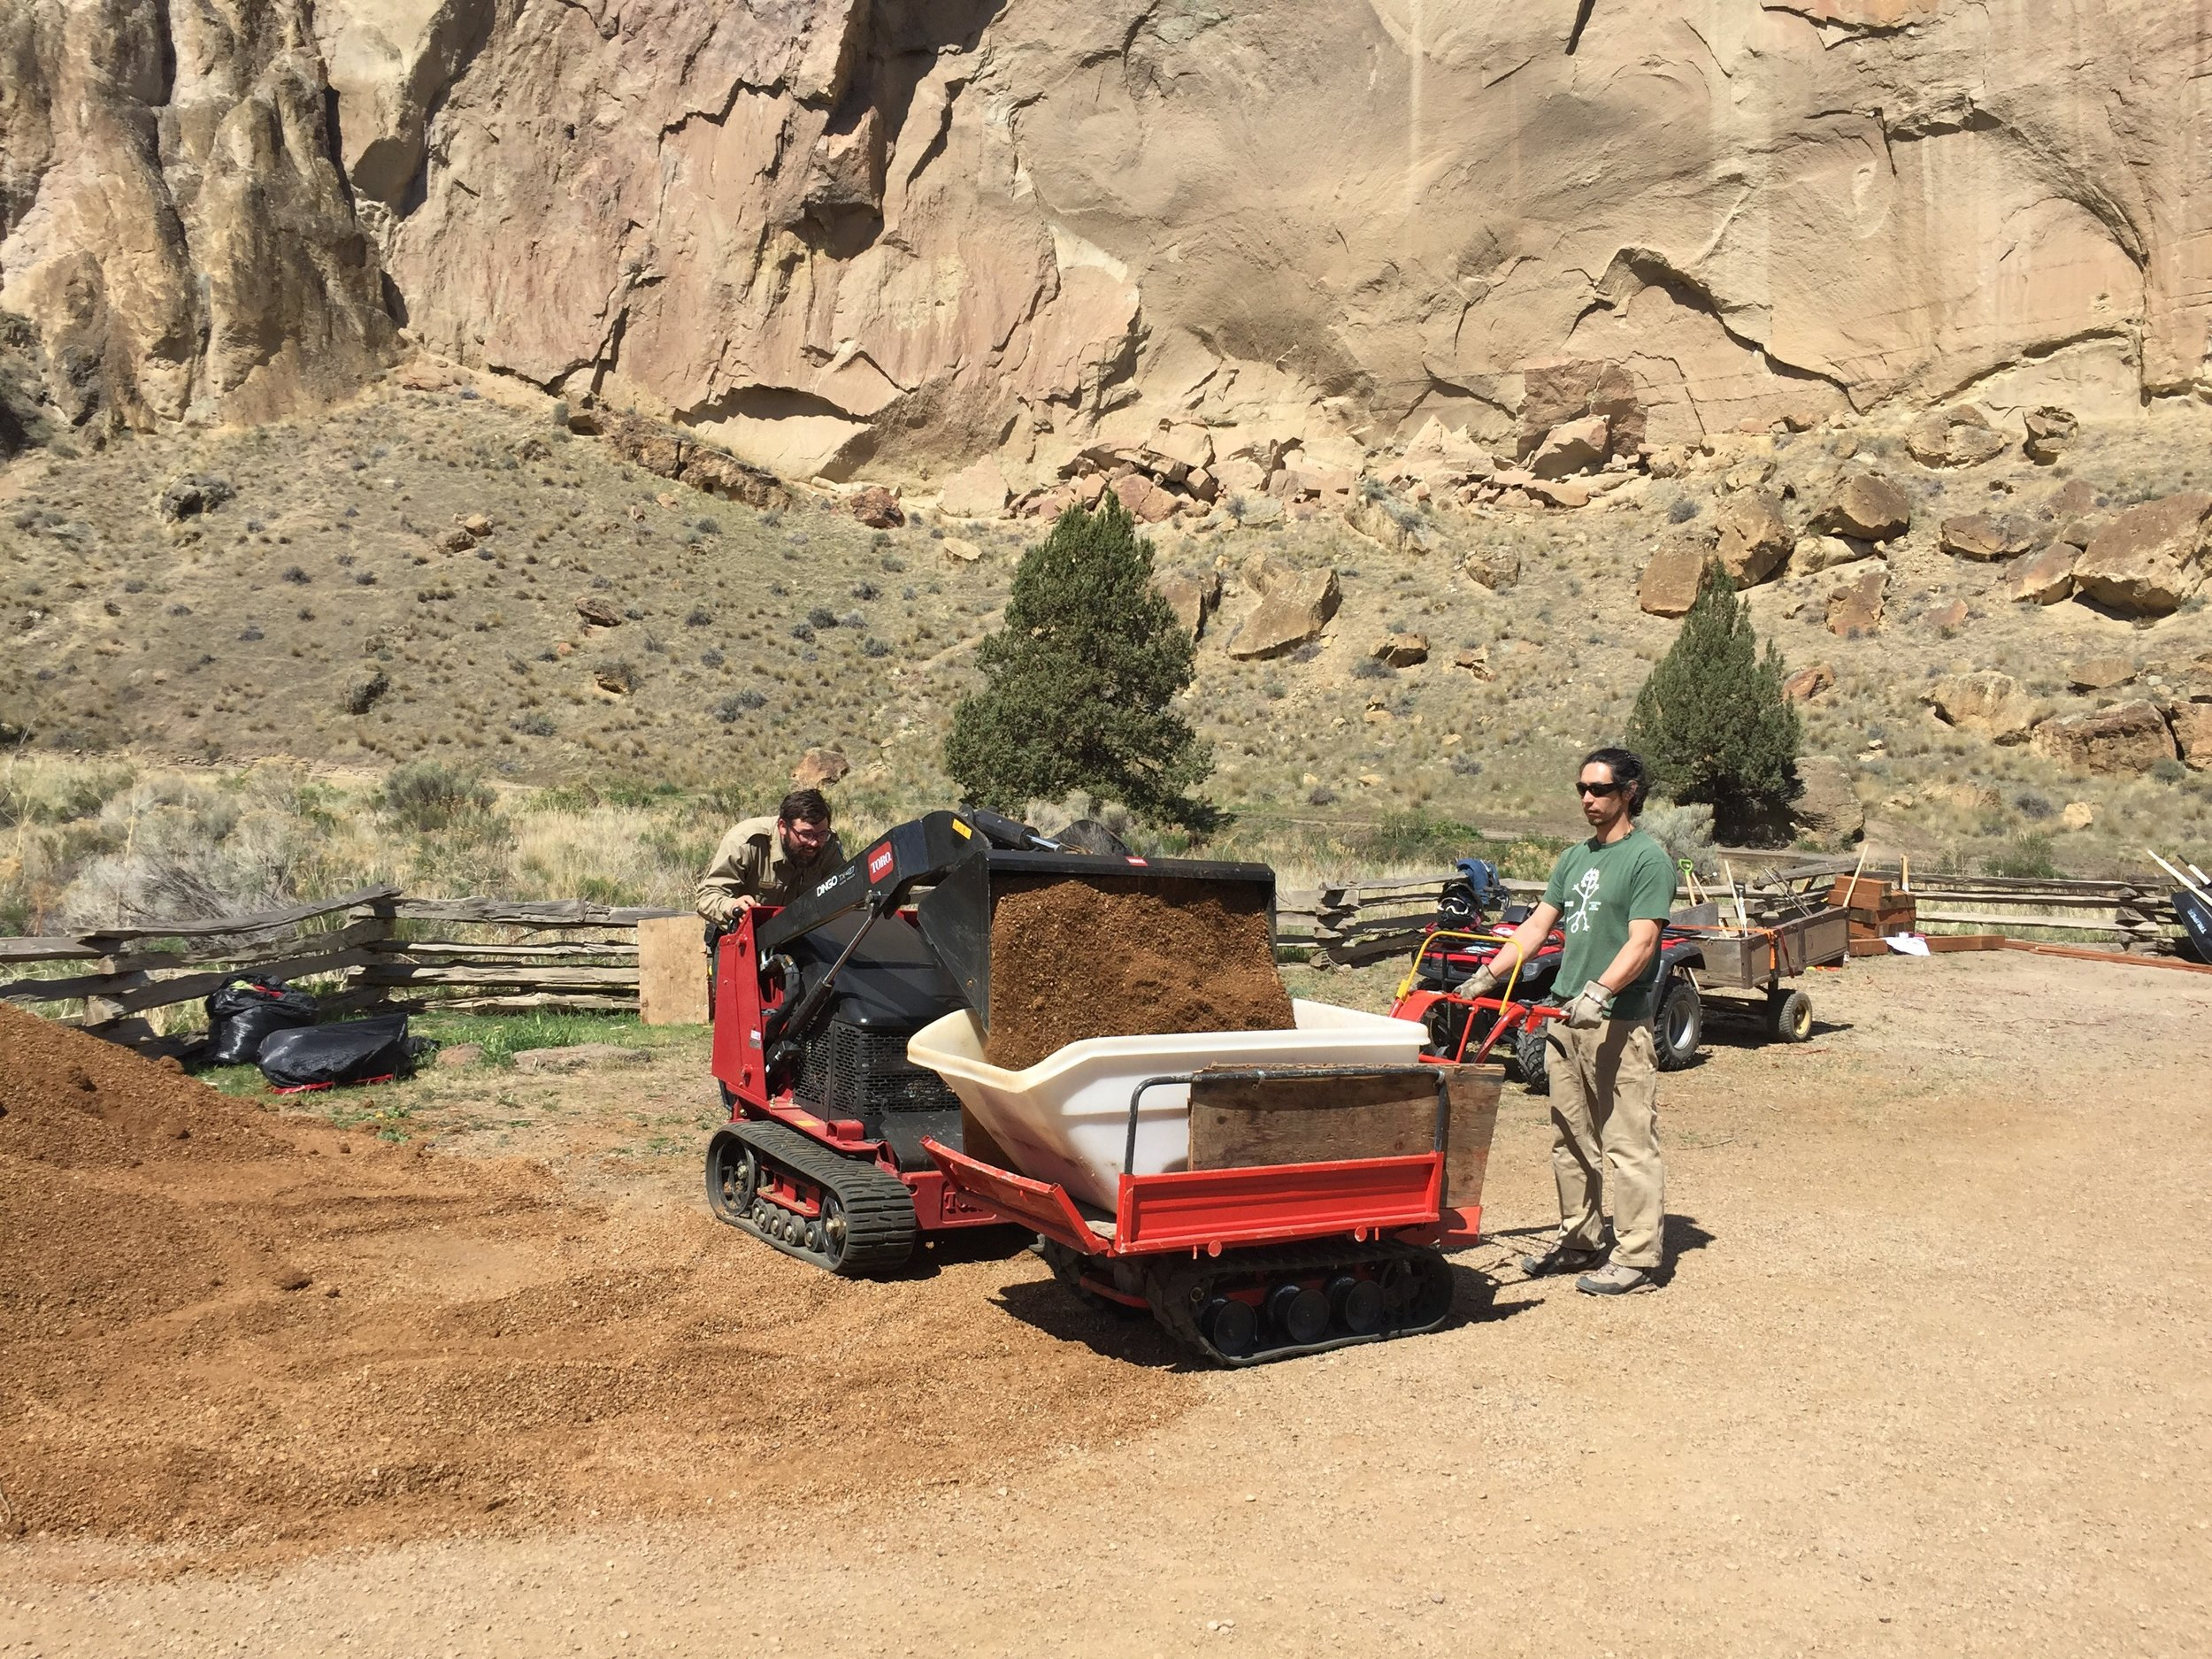 This park ranger got serious about moving dirt with one of the volunteers.